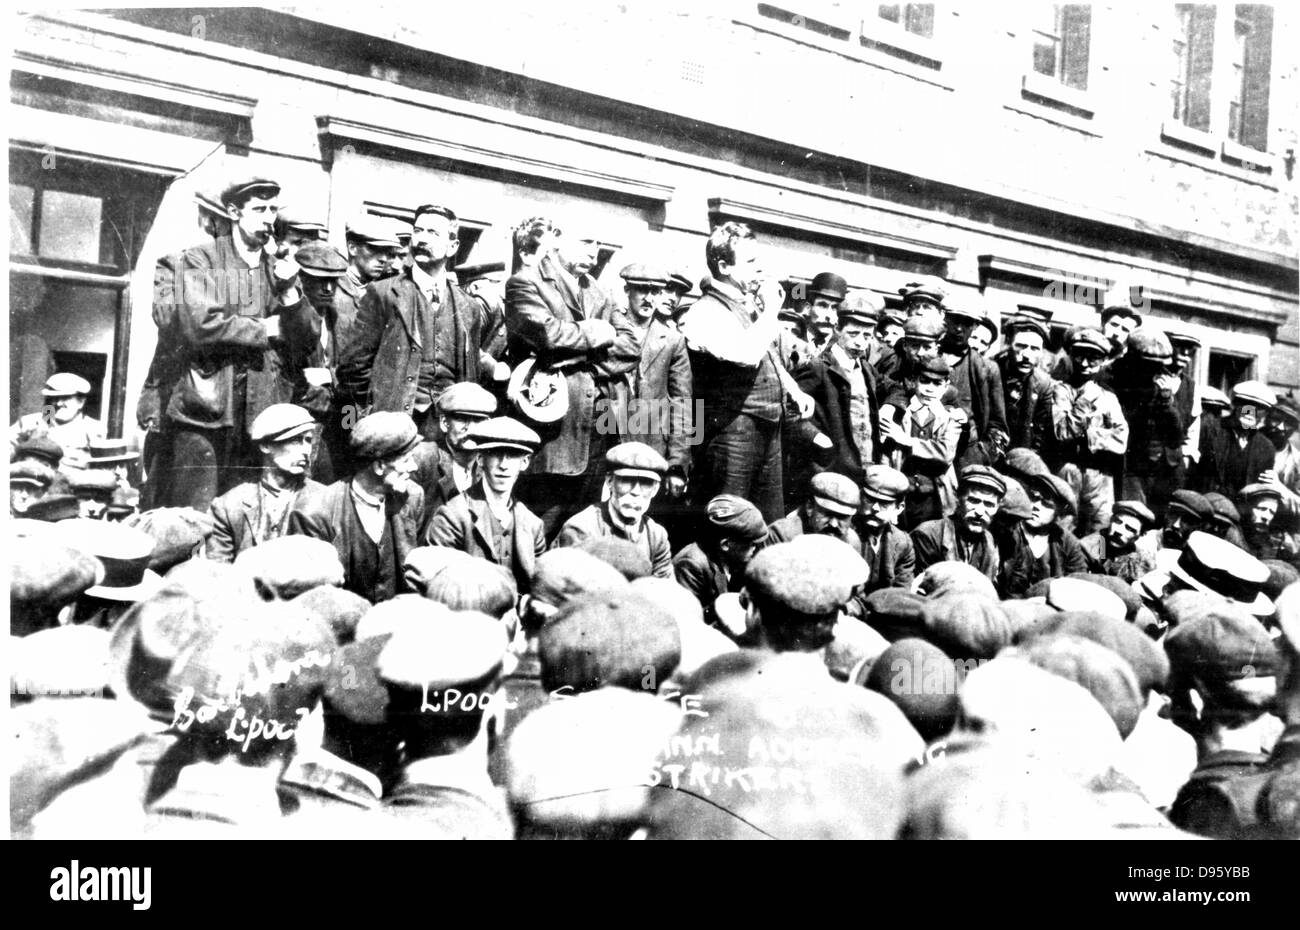 Tom Mann (1886-1941) British trade unionist born Coventry, Warwickshire, addressing the strikers. Photograph. - Stock Image